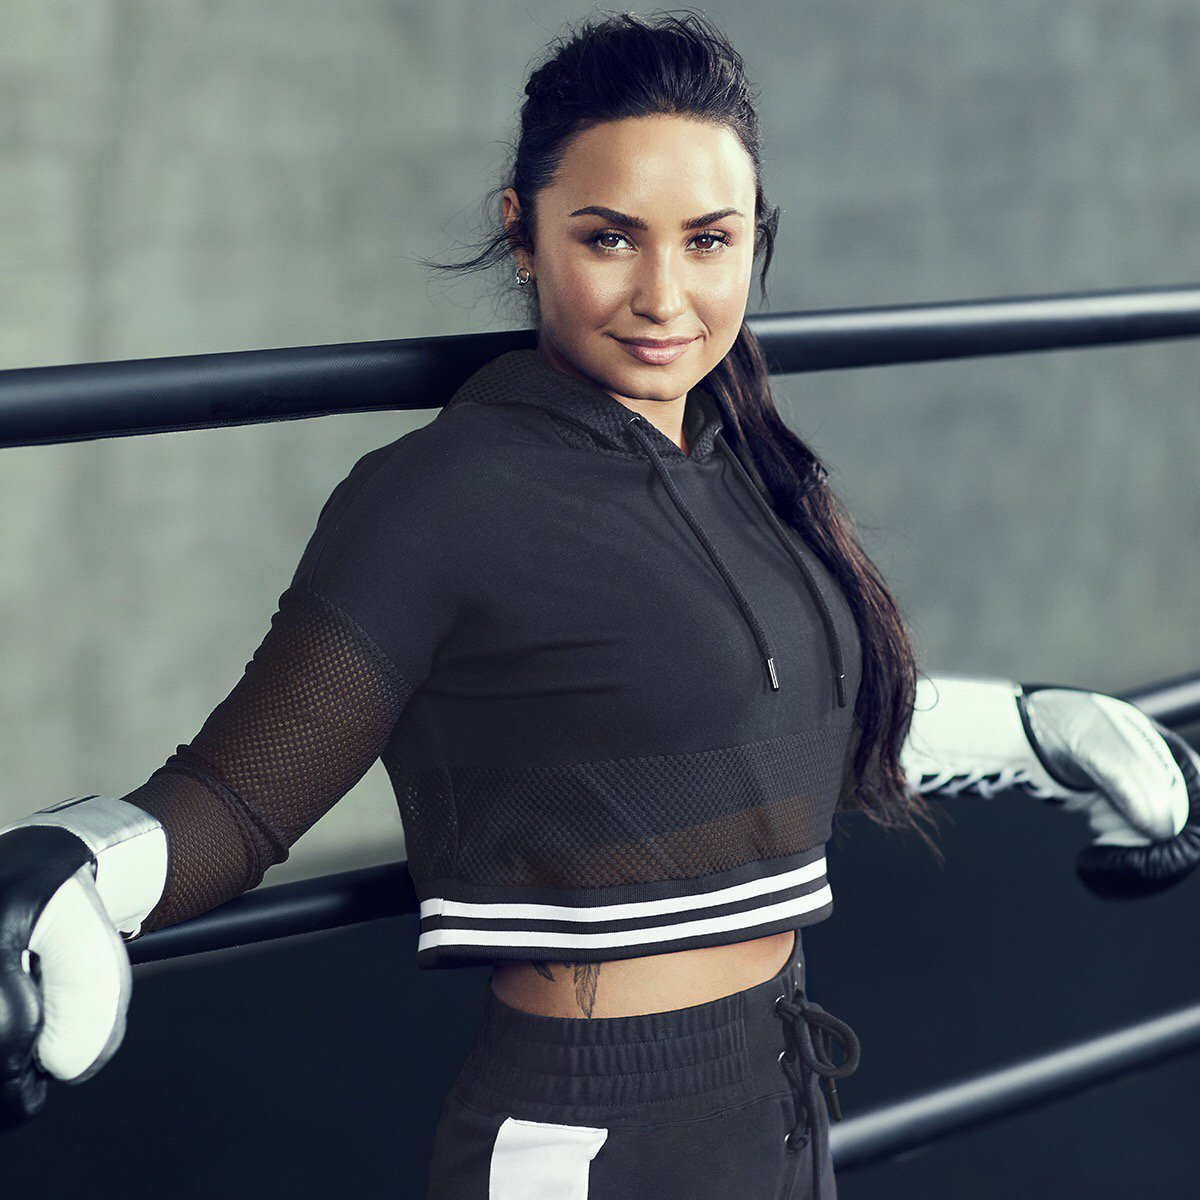 One of my favorite @fabletics looks ???? The Champ Outfit #Demi4Fabletics https://t.co/eQ892piUIo https://t.co/bITfDDHBly